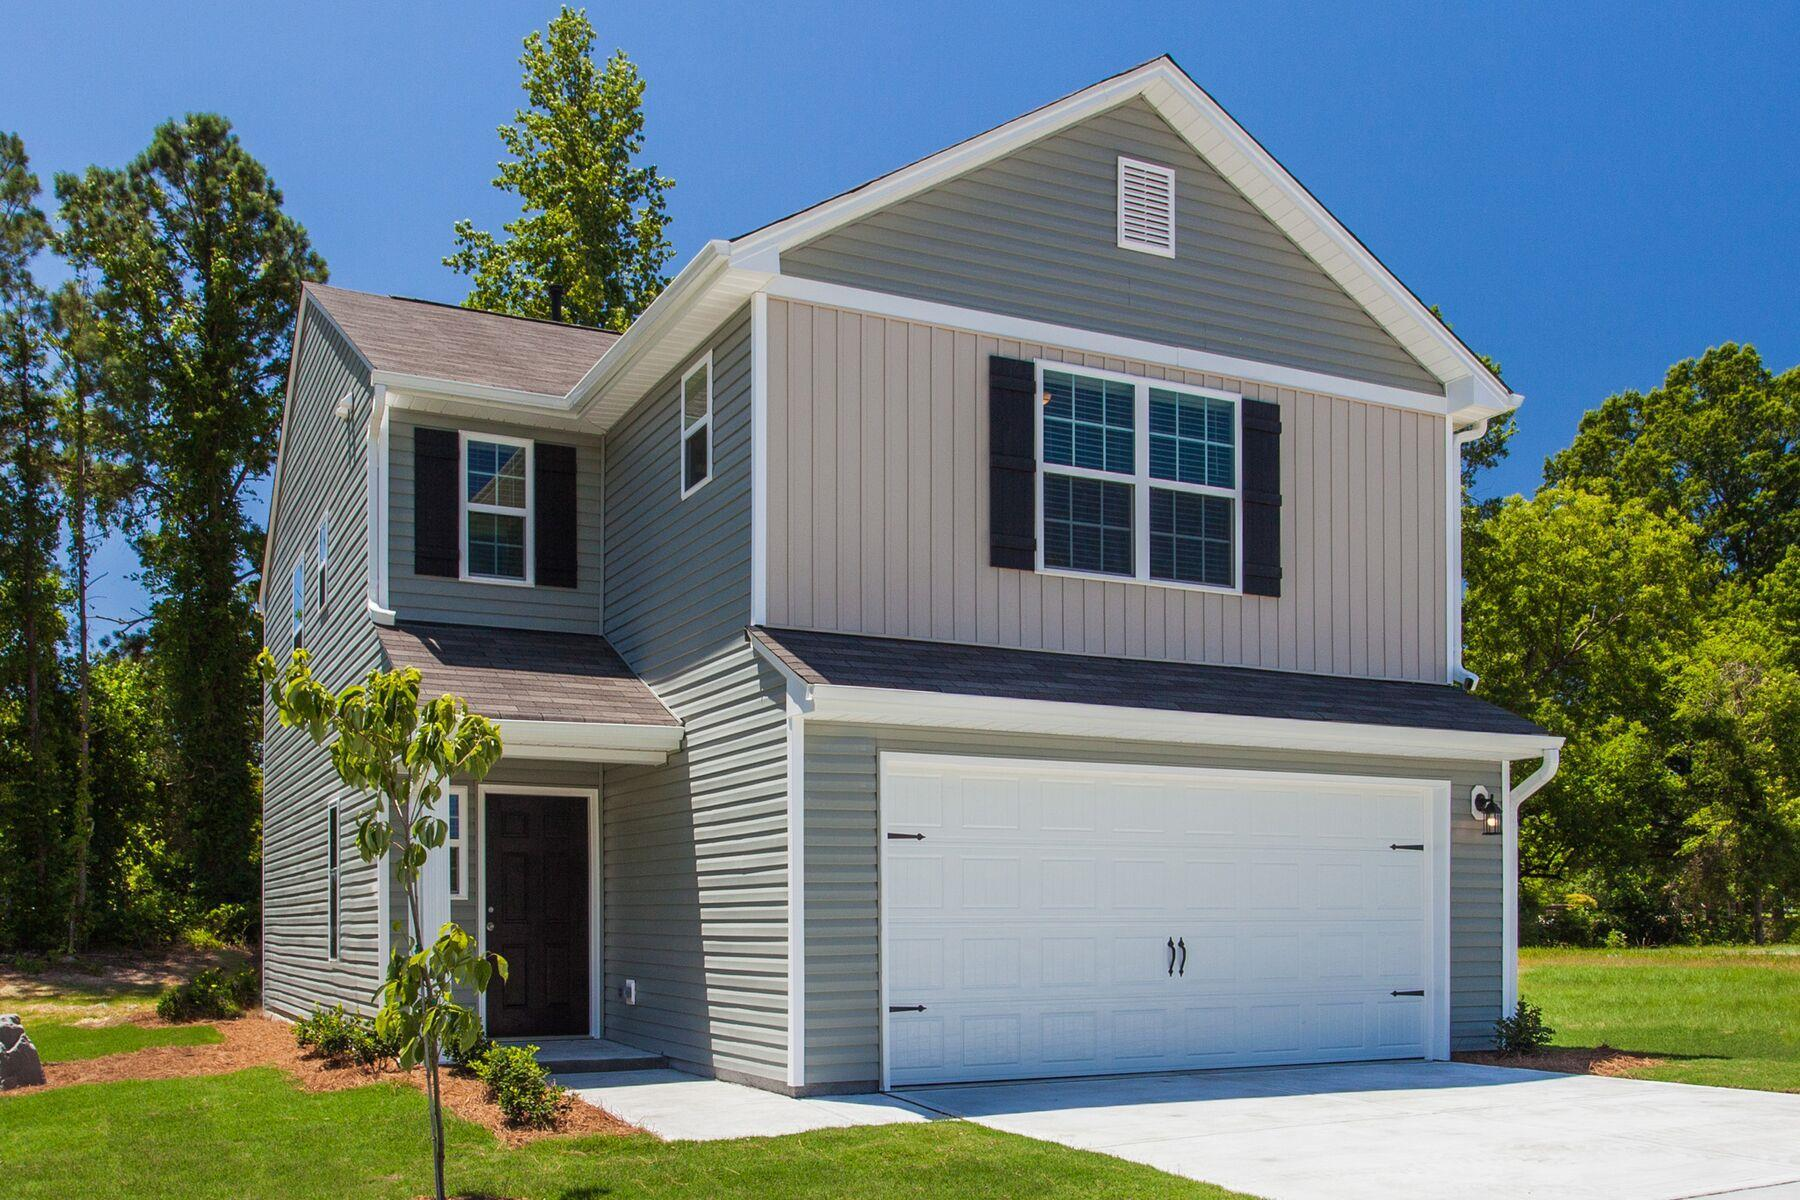 LGI Homes at Glen Meadows:Tour this home today!